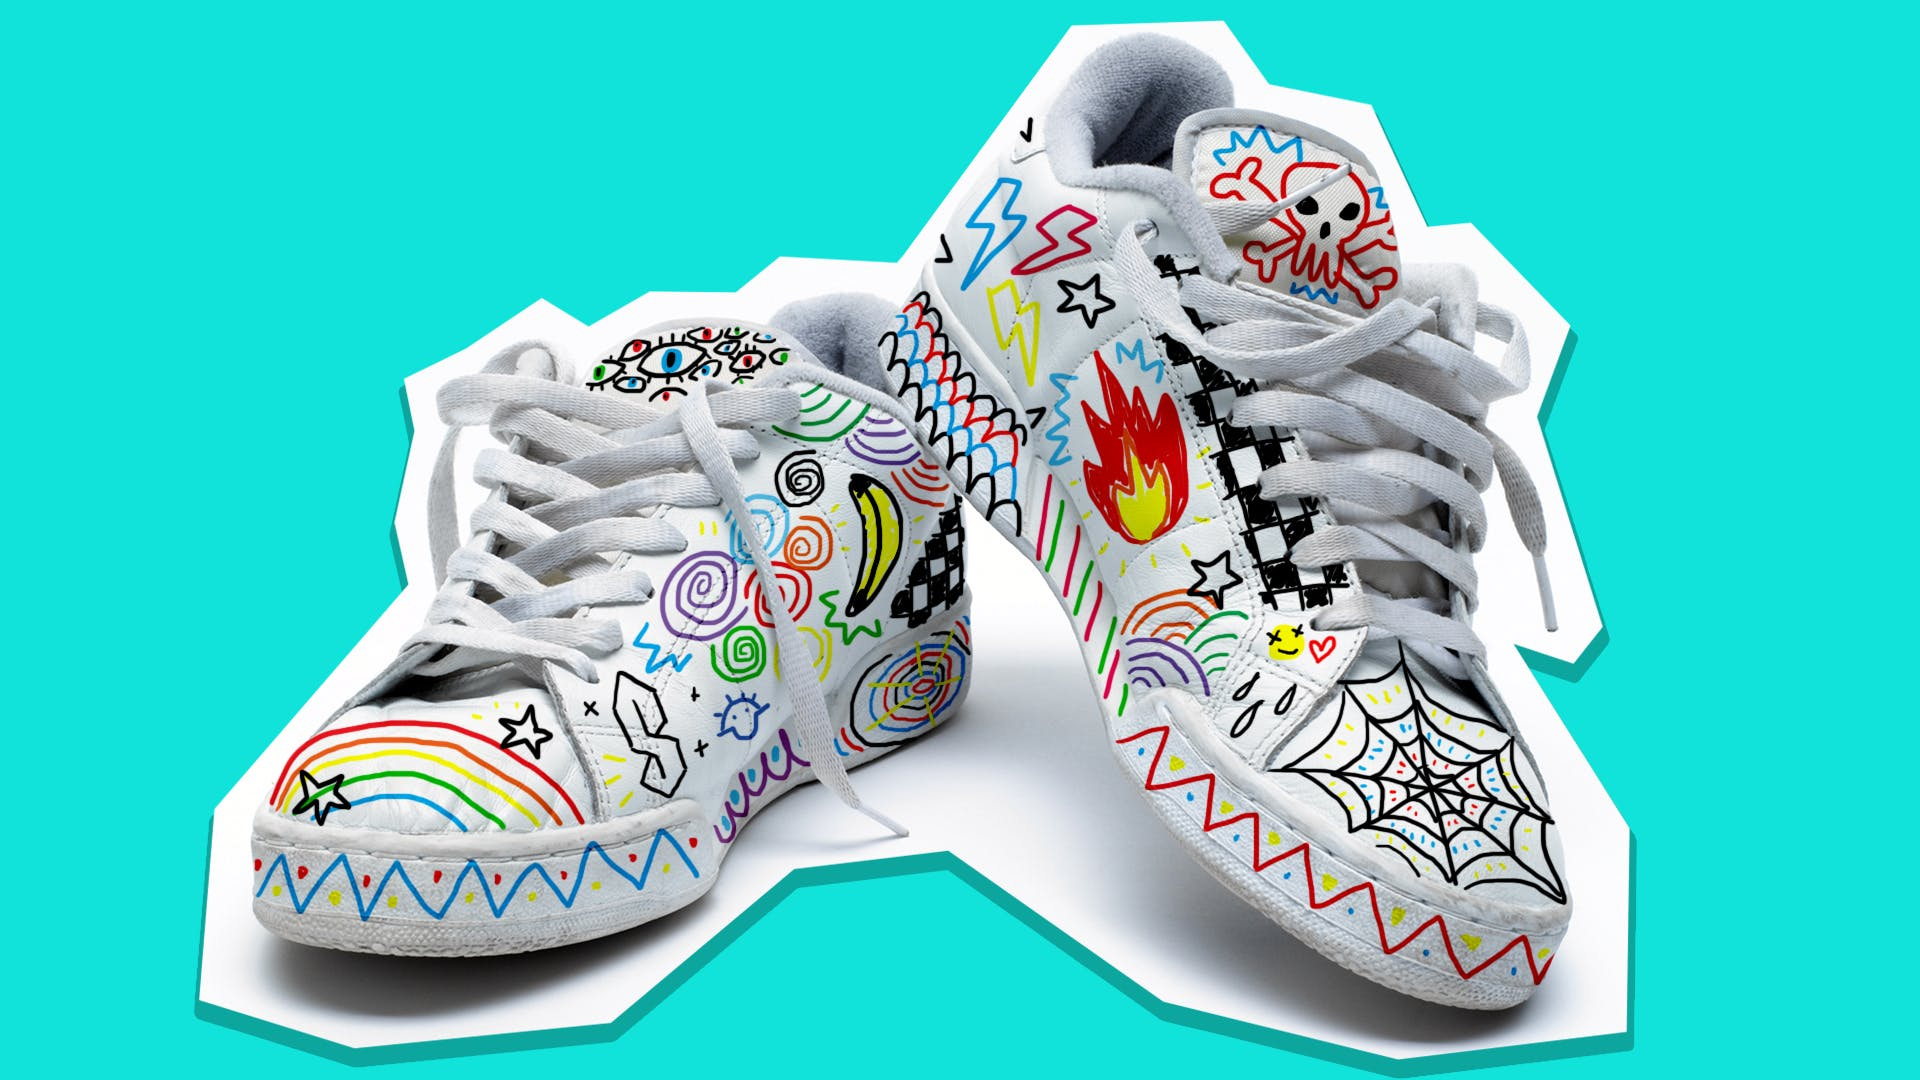 Graffitied trainers